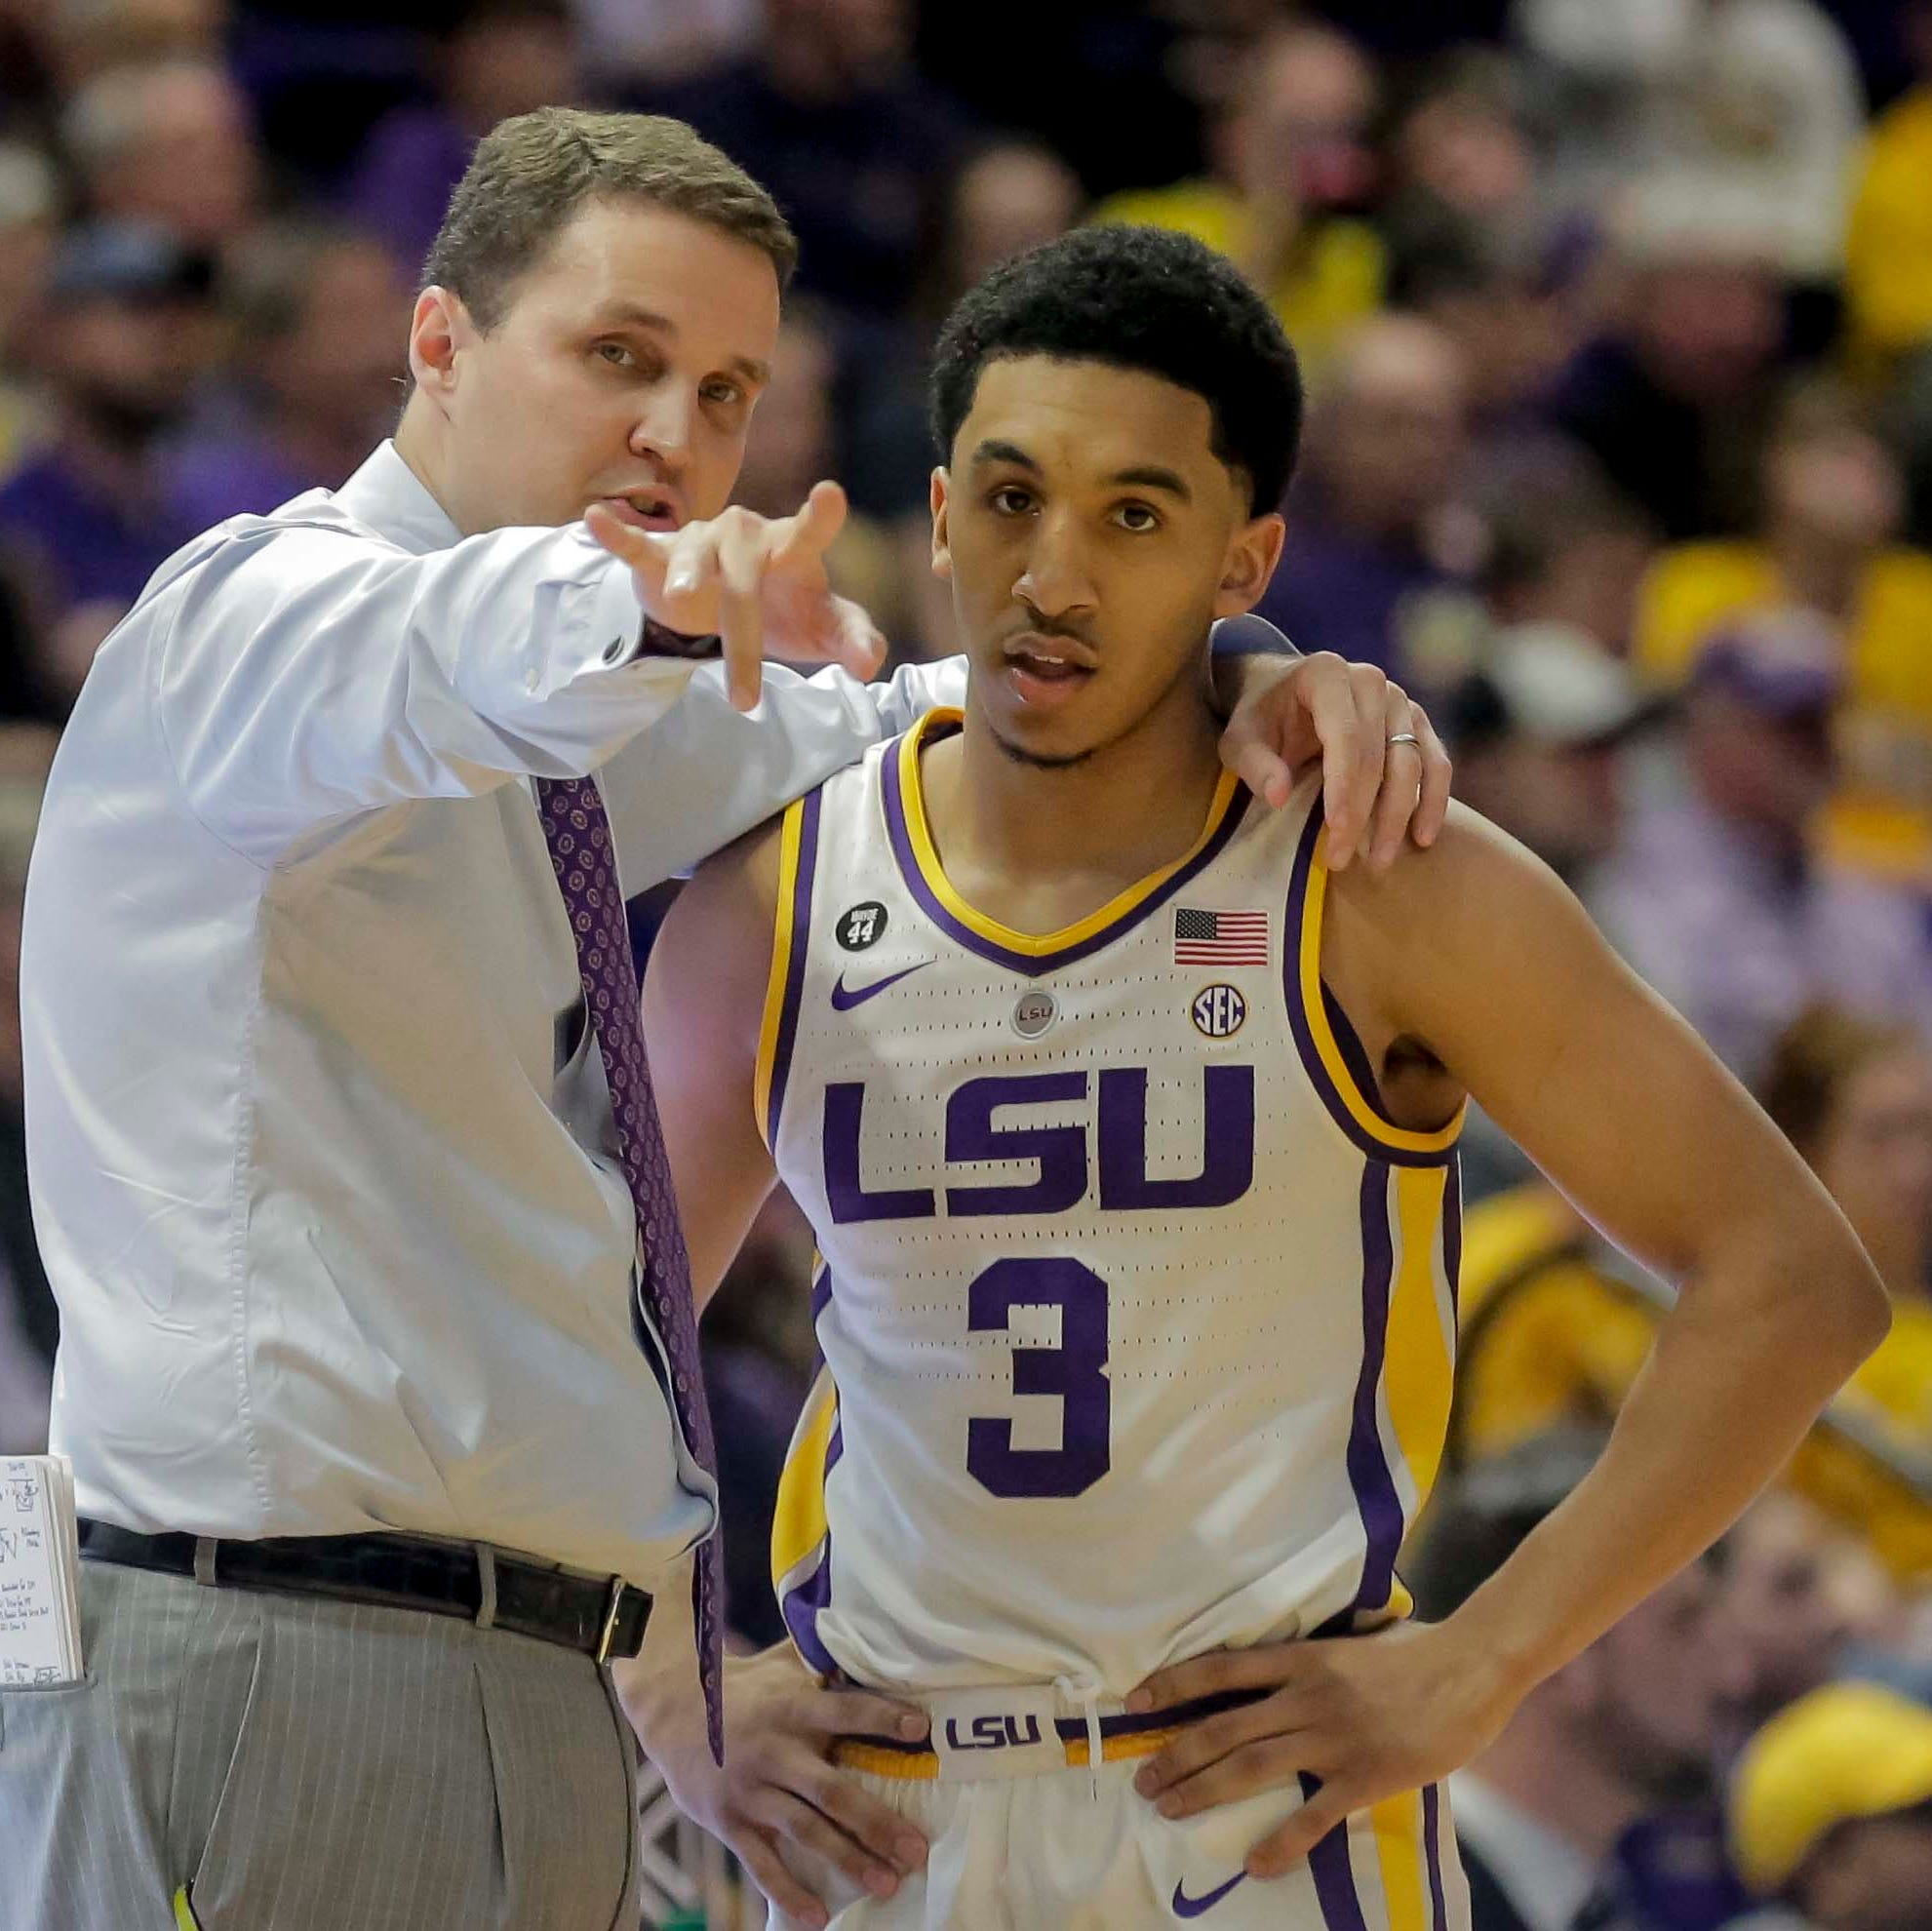 It's too early for the NCAA Tournament, but LSU's basketball coach is already dancing